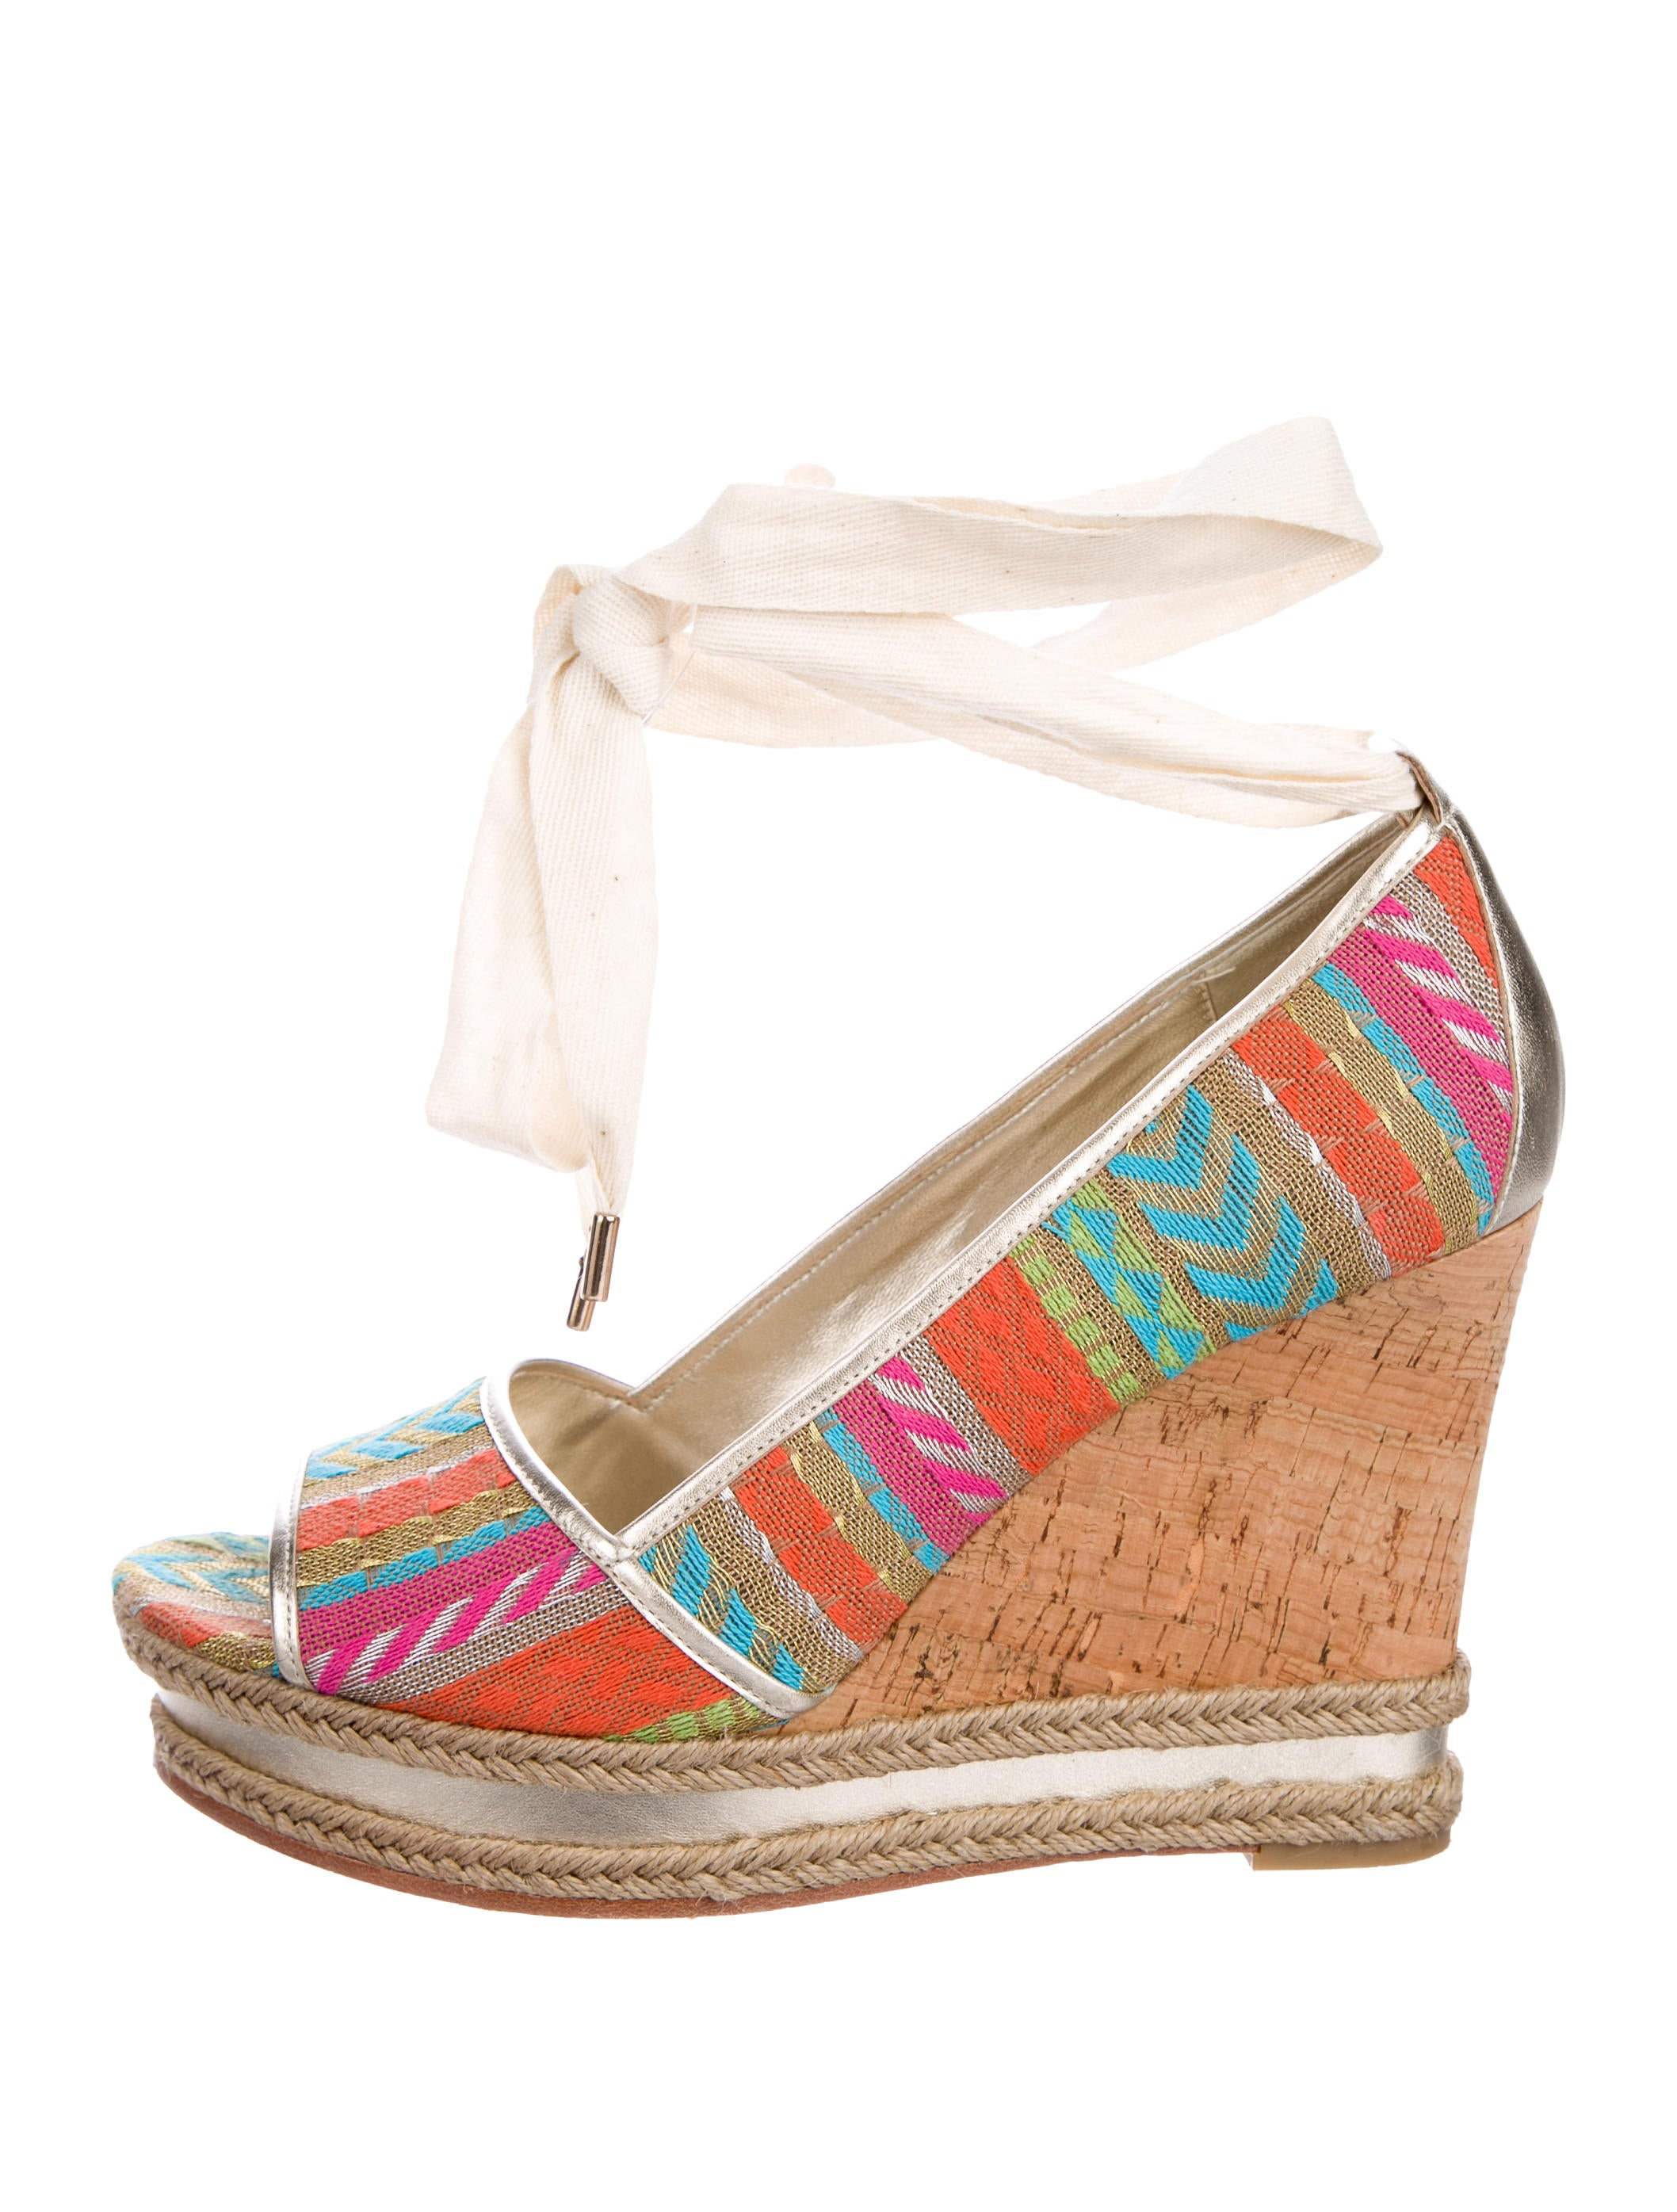 Donald J Pliner Naomi Wedge Sandals looking for cheap online 2beEHjlnR6